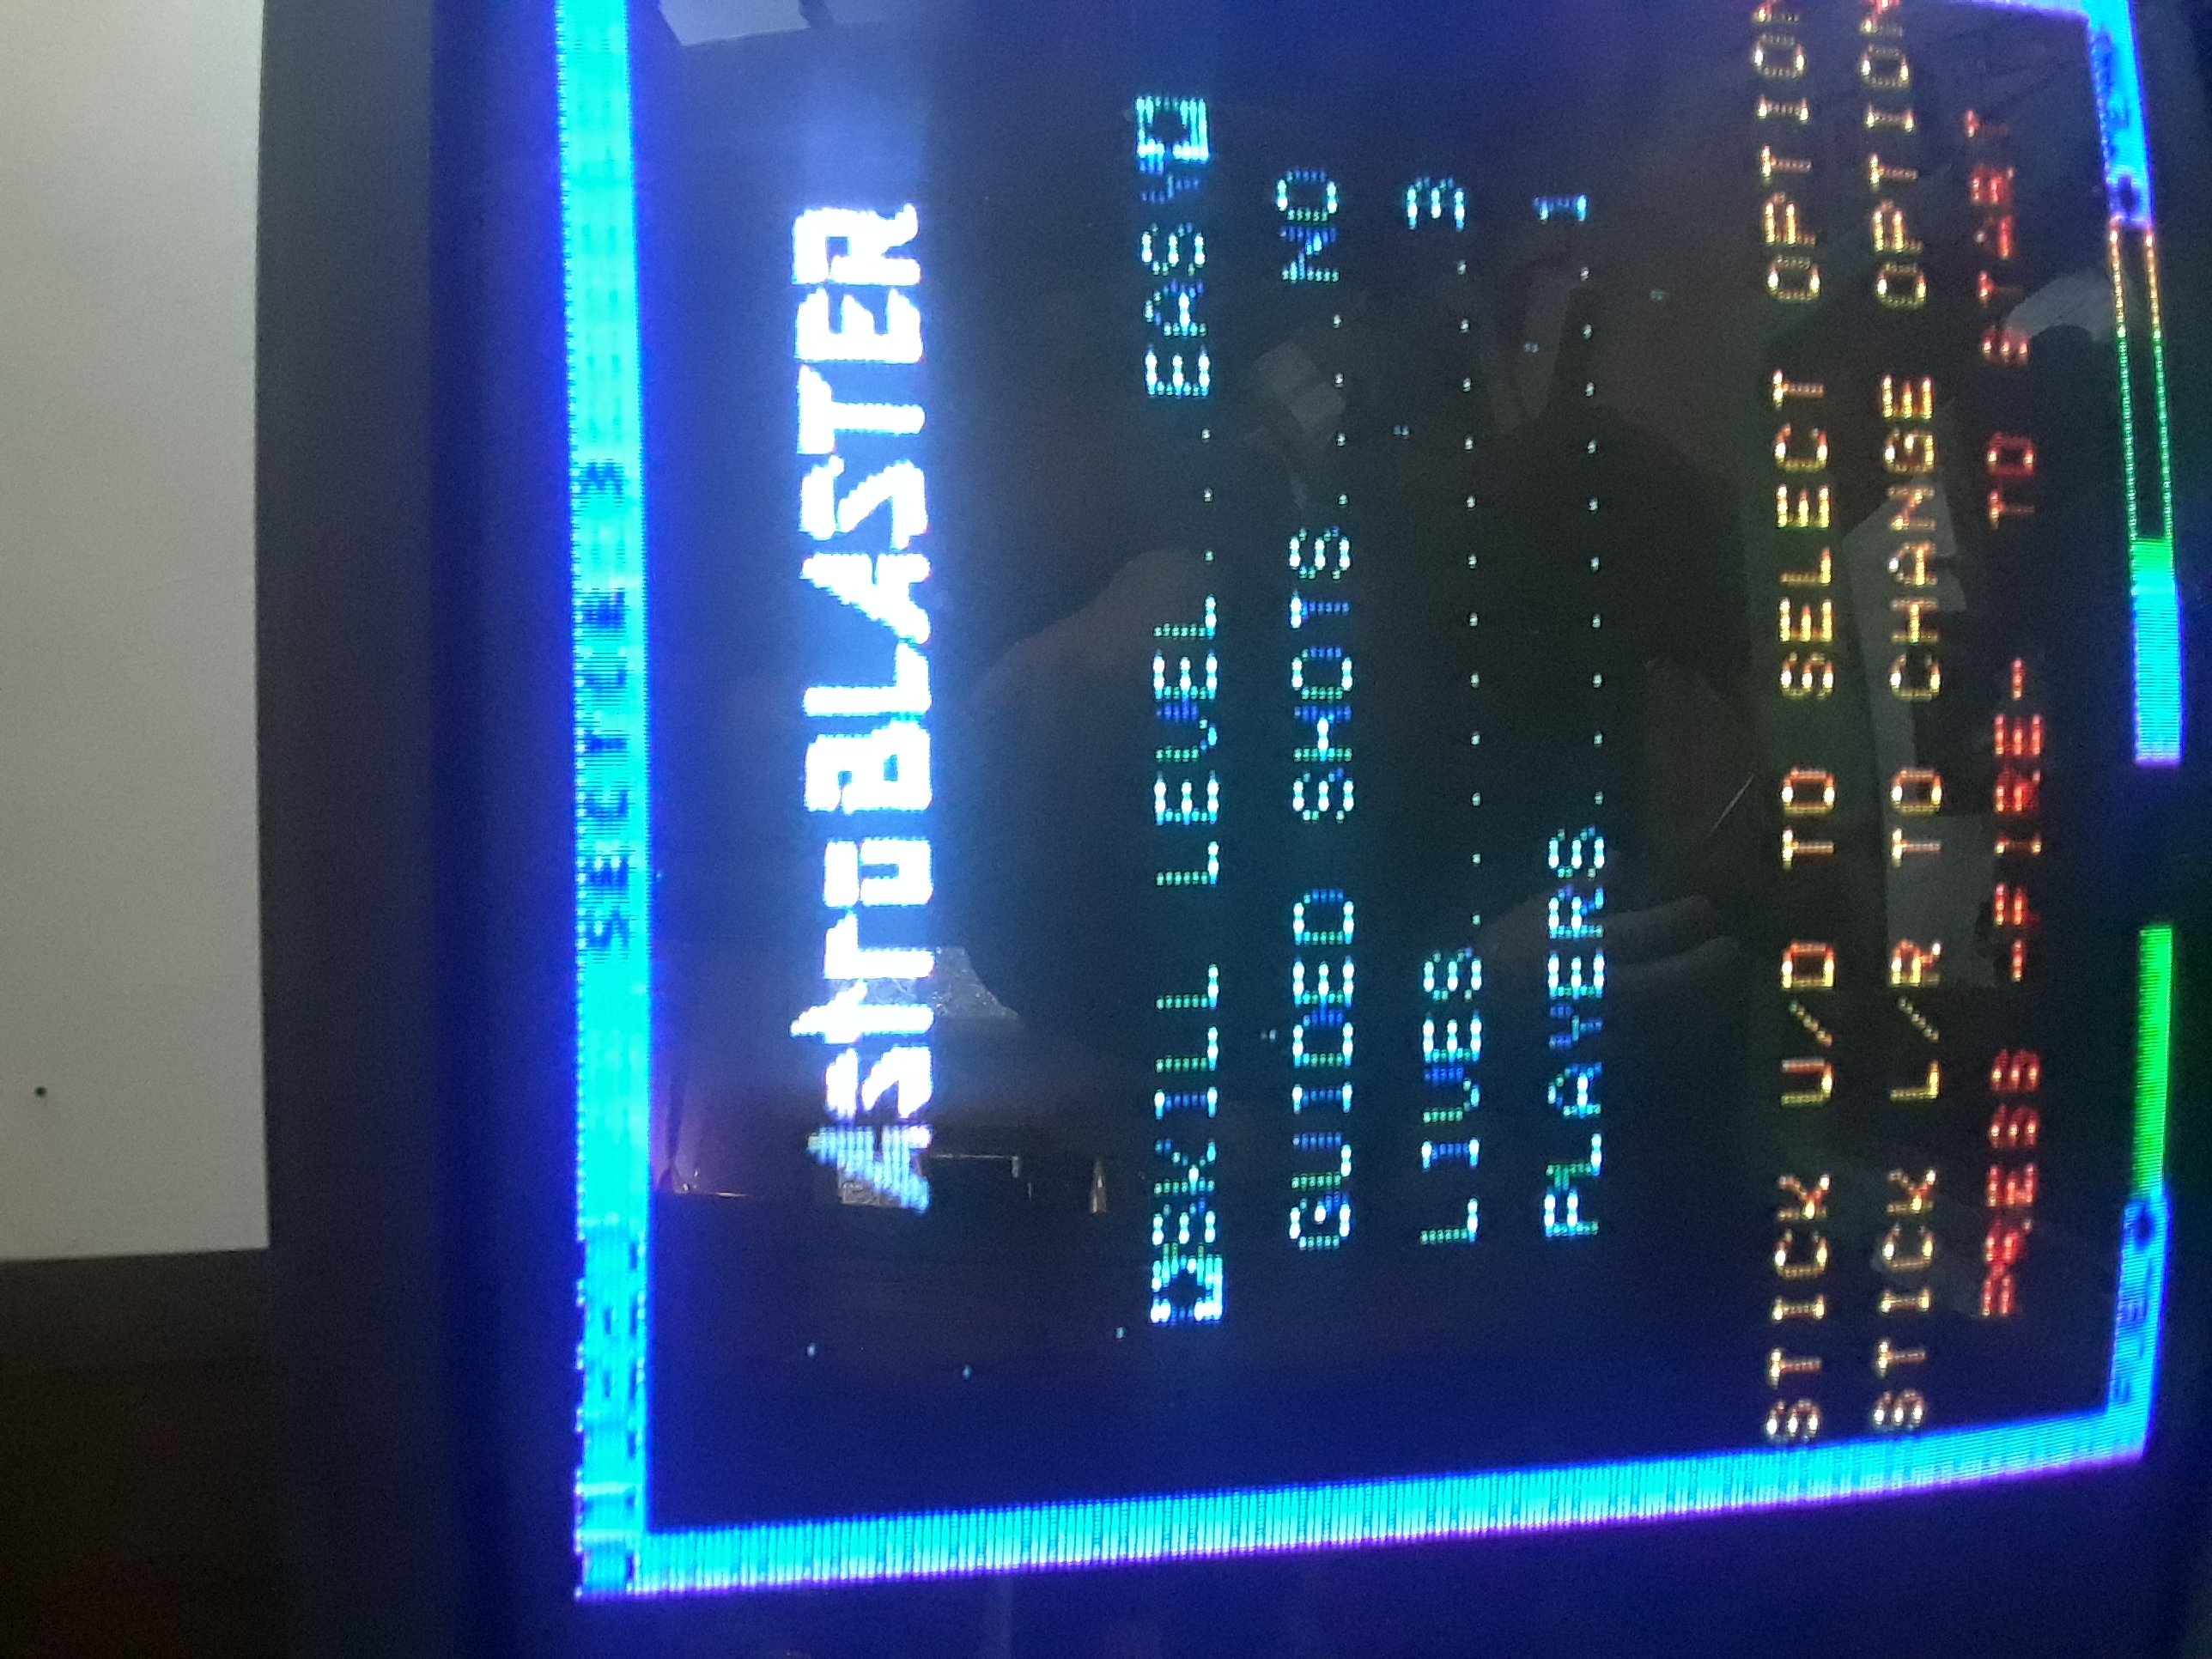 iamthefallen1: Astro Blaster [Easy] (Atari 7800) 10,220 points on 2019-04-11 23:19:03